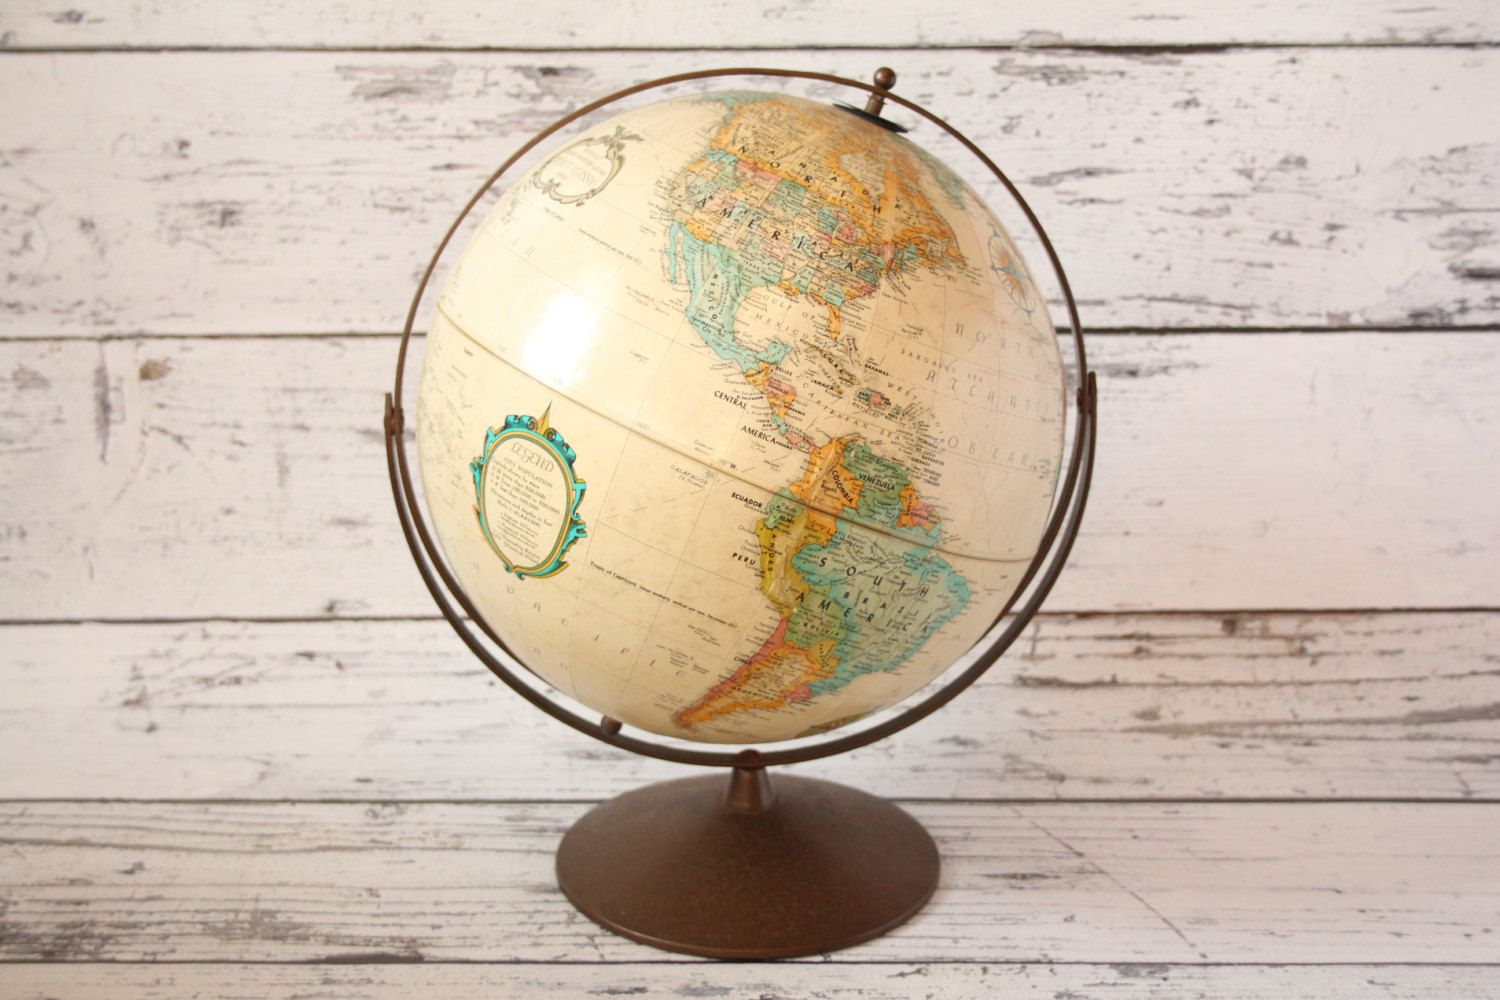 Vintage rare double axis replogle globe sepia map antique colored vintage rare double axis replogle globe sepia map antique colored brass metal base spinning 12 diameter world classic series topographical by gumiabroncs Gallery